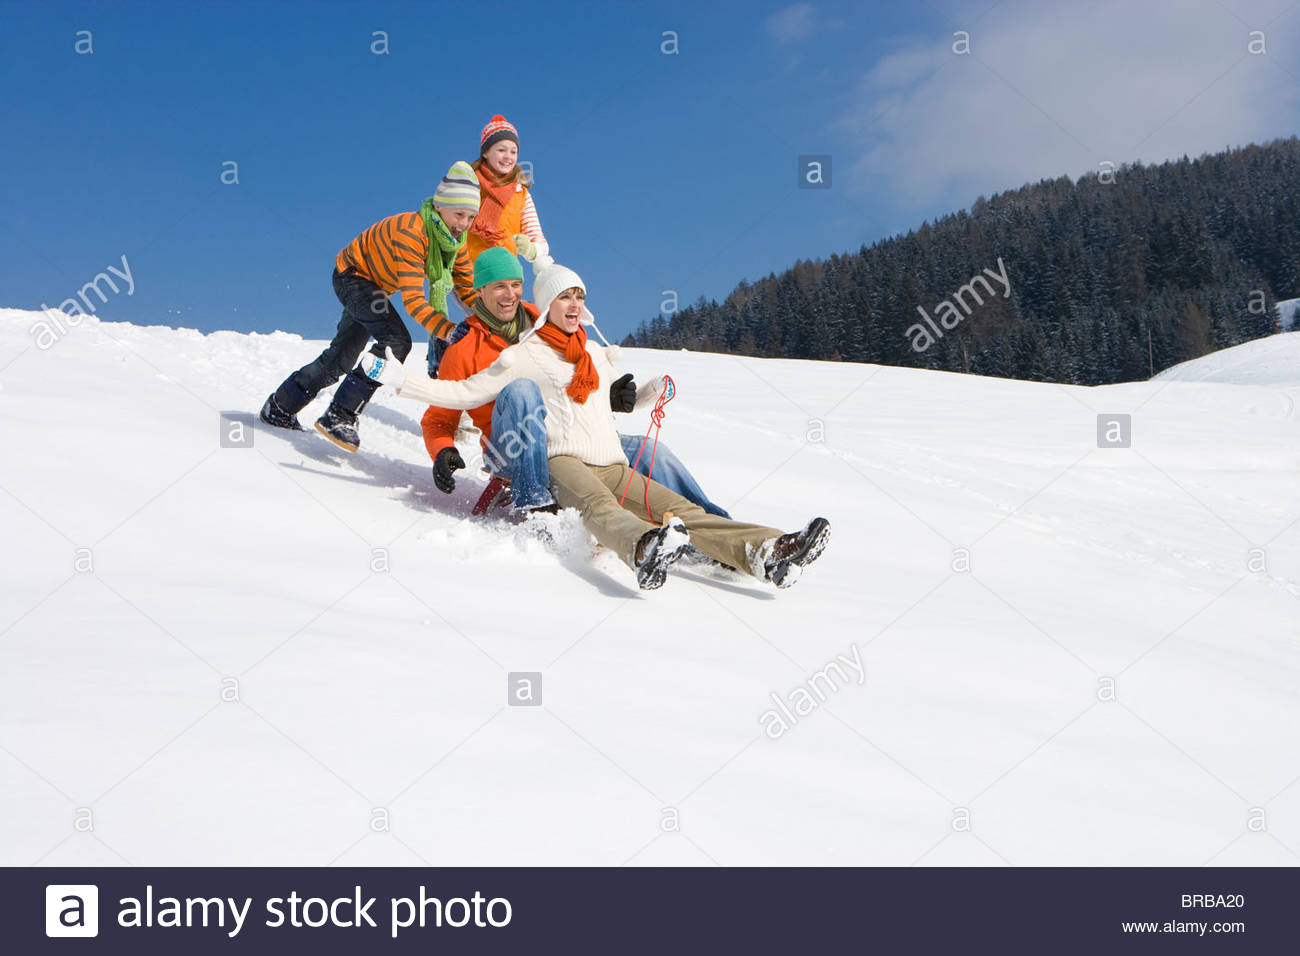 Children pushing parents downhill on sled on ski slope - Stock Image